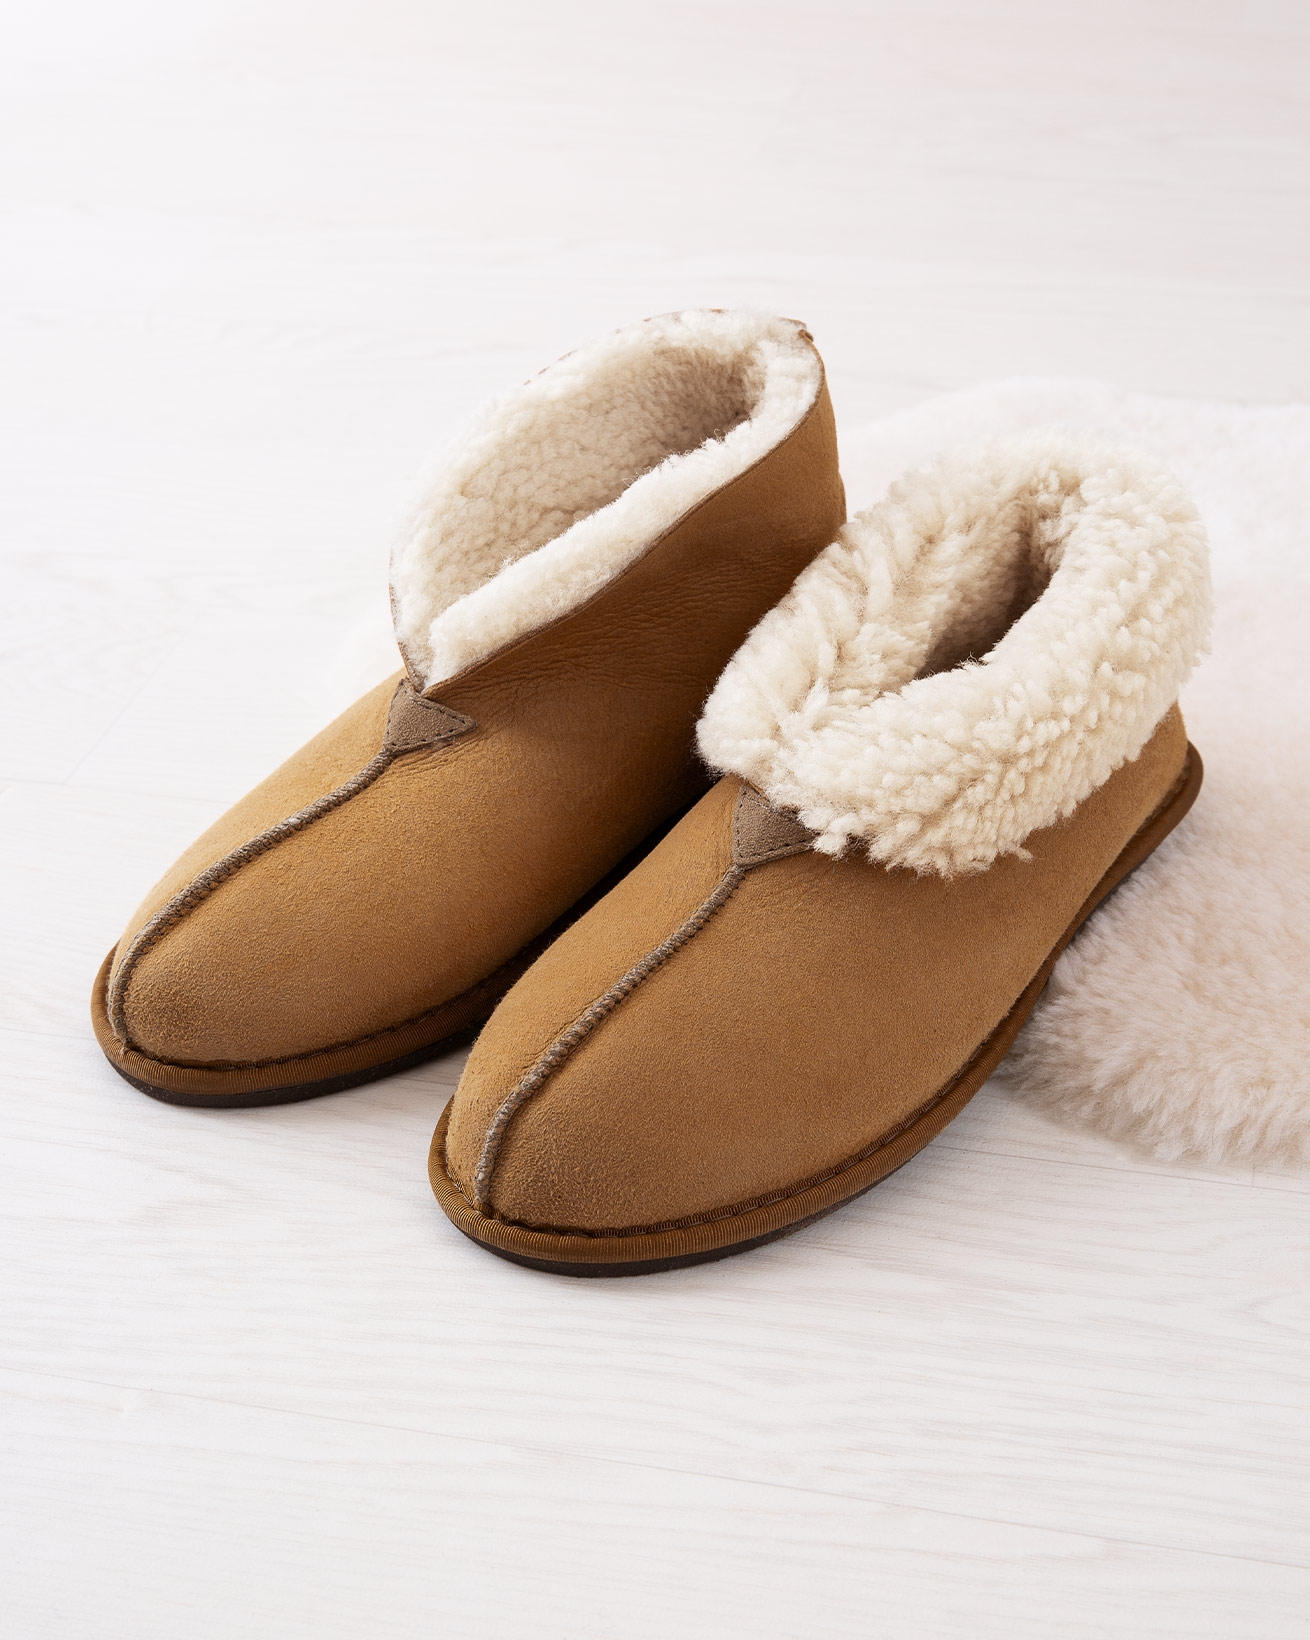 6618_mens-sheepskin-bootee-slippers_burnt-honey_lifestyle_lfs.jpg